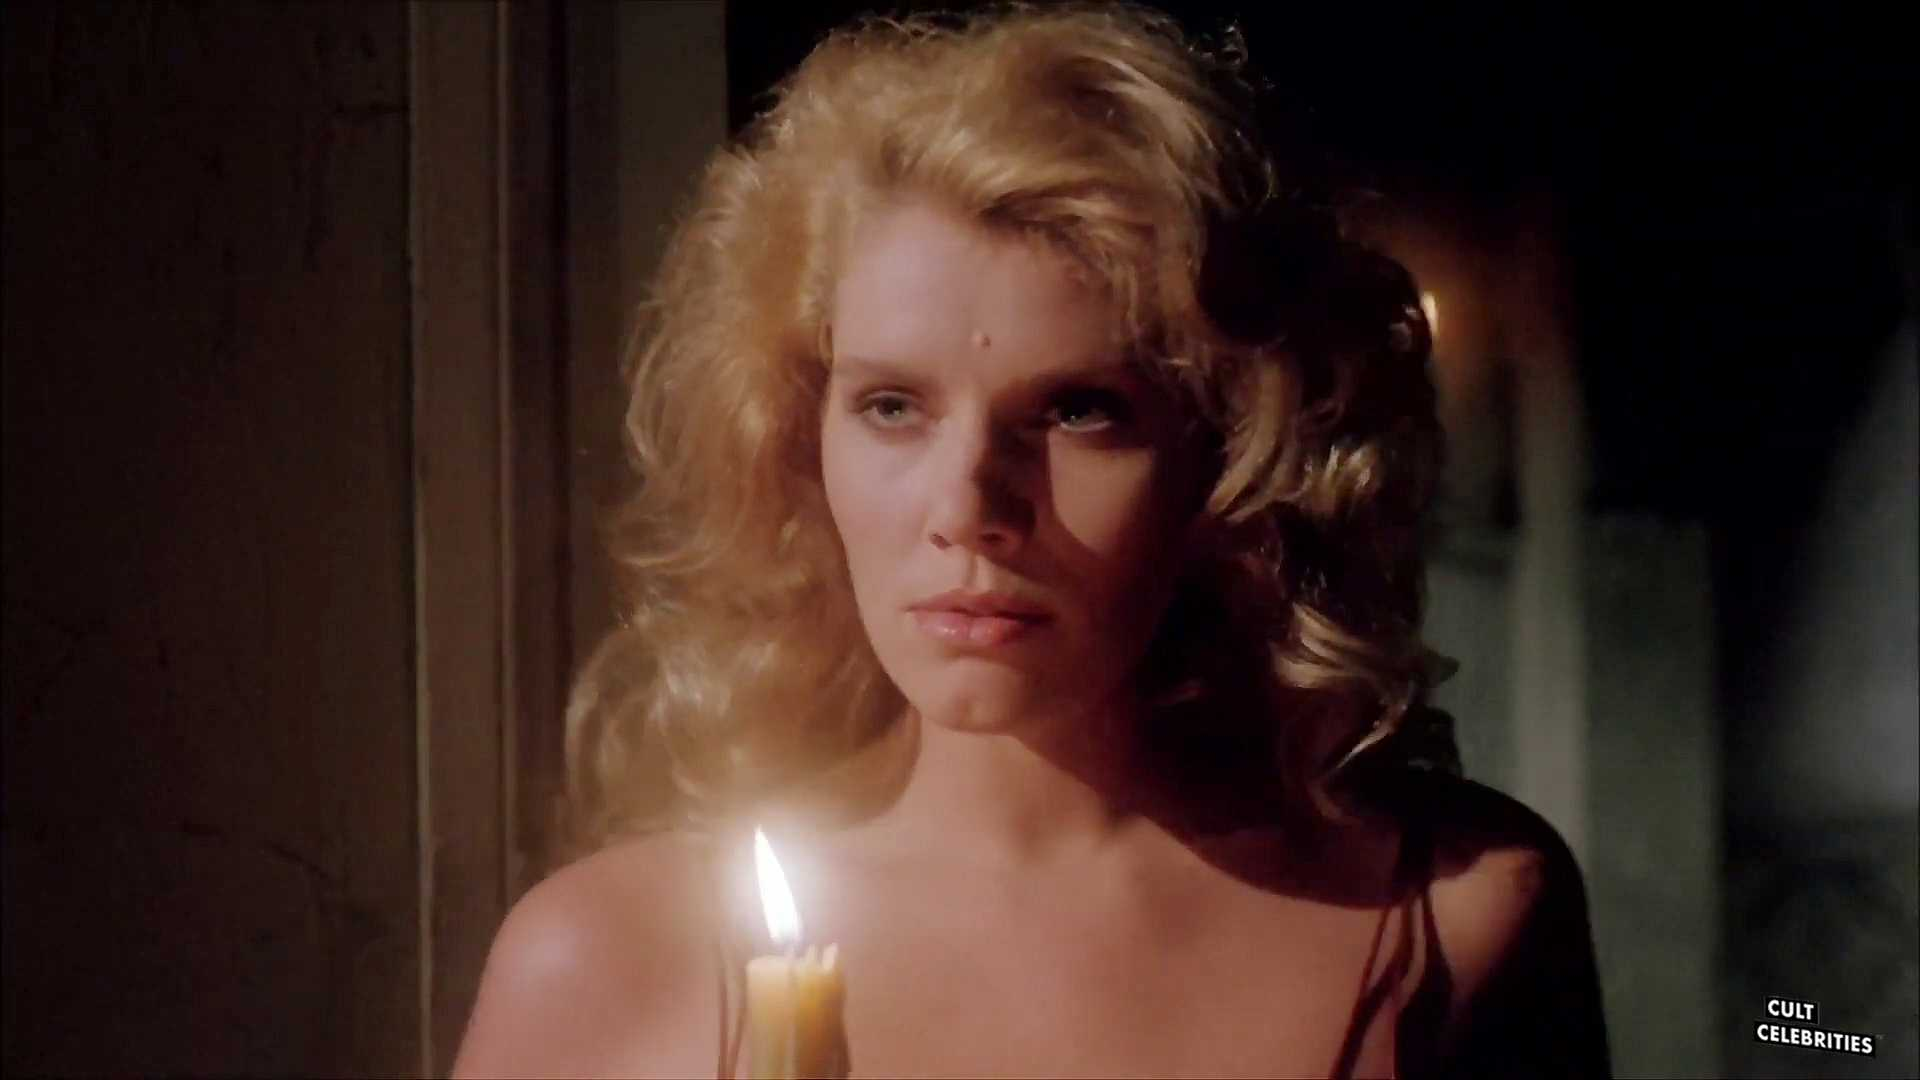 Lana Clarkson in The Haunting of Morellawith Gail Thackray (also known as Gail Harris), Debbie Dutch and Maria Ford.